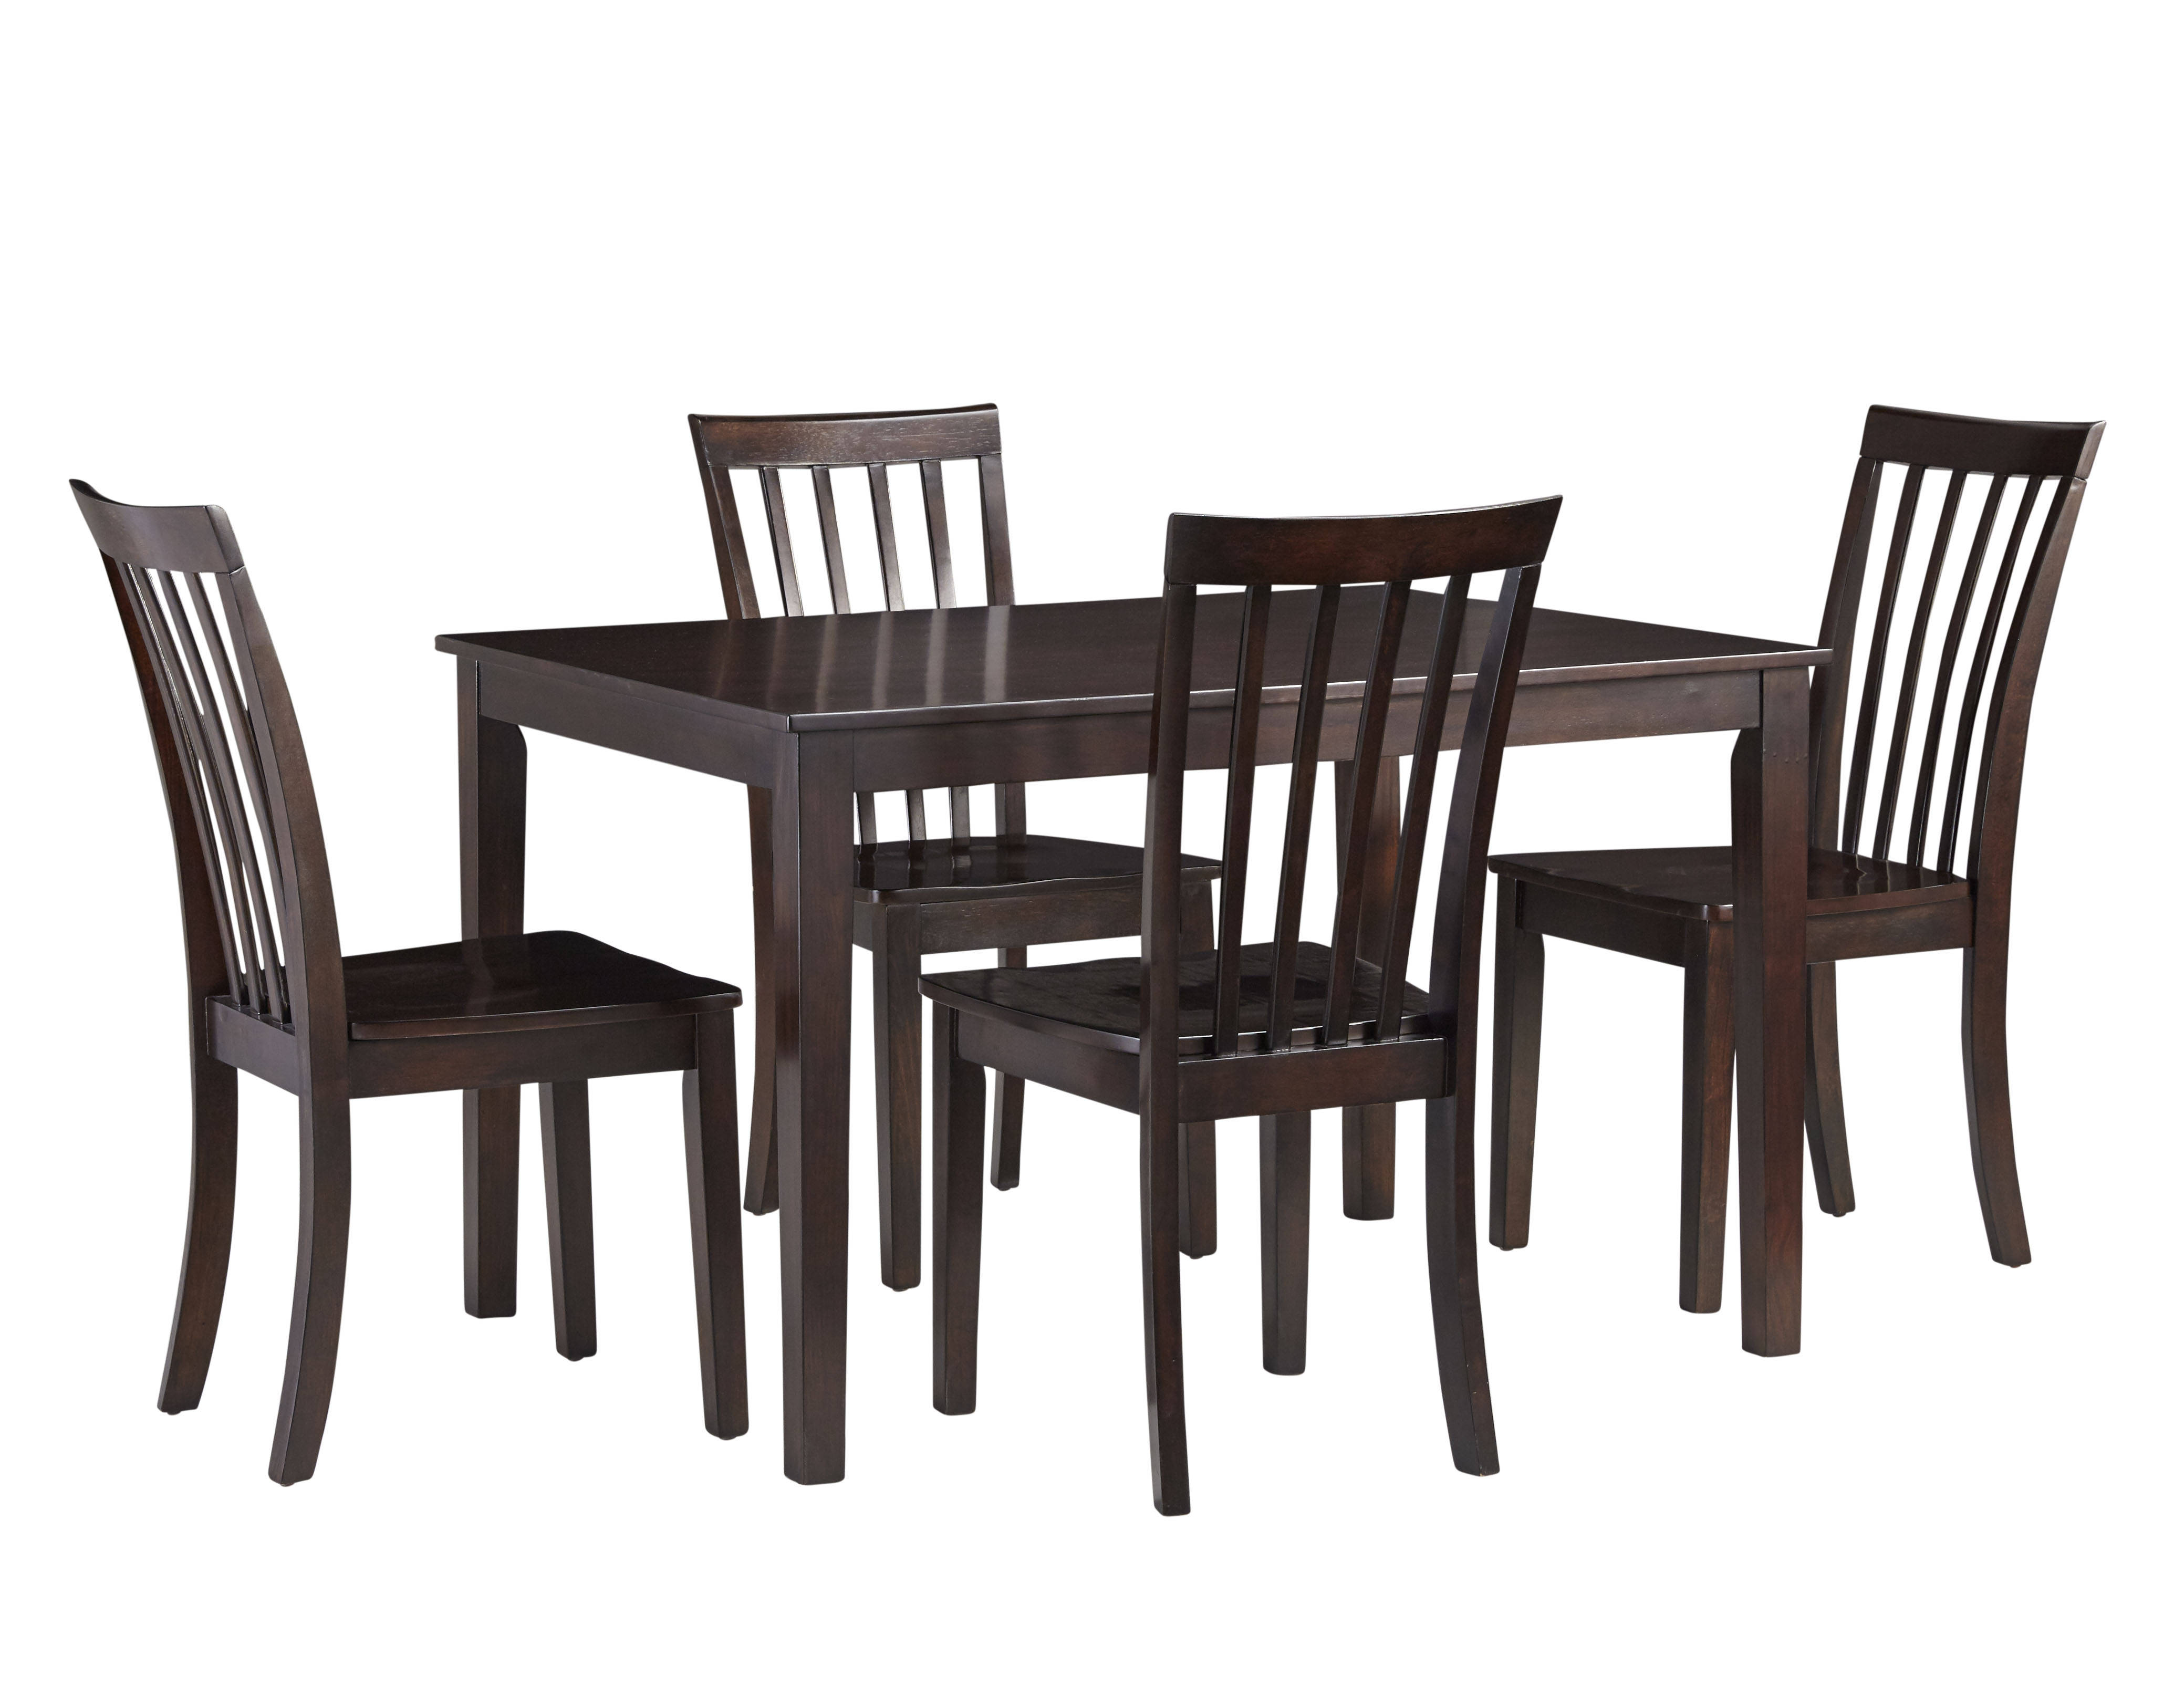 Tremendous Standard Furniture Stanton Glossy Cherry 5Pc Dining Room Set Download Free Architecture Designs Sospemadebymaigaardcom